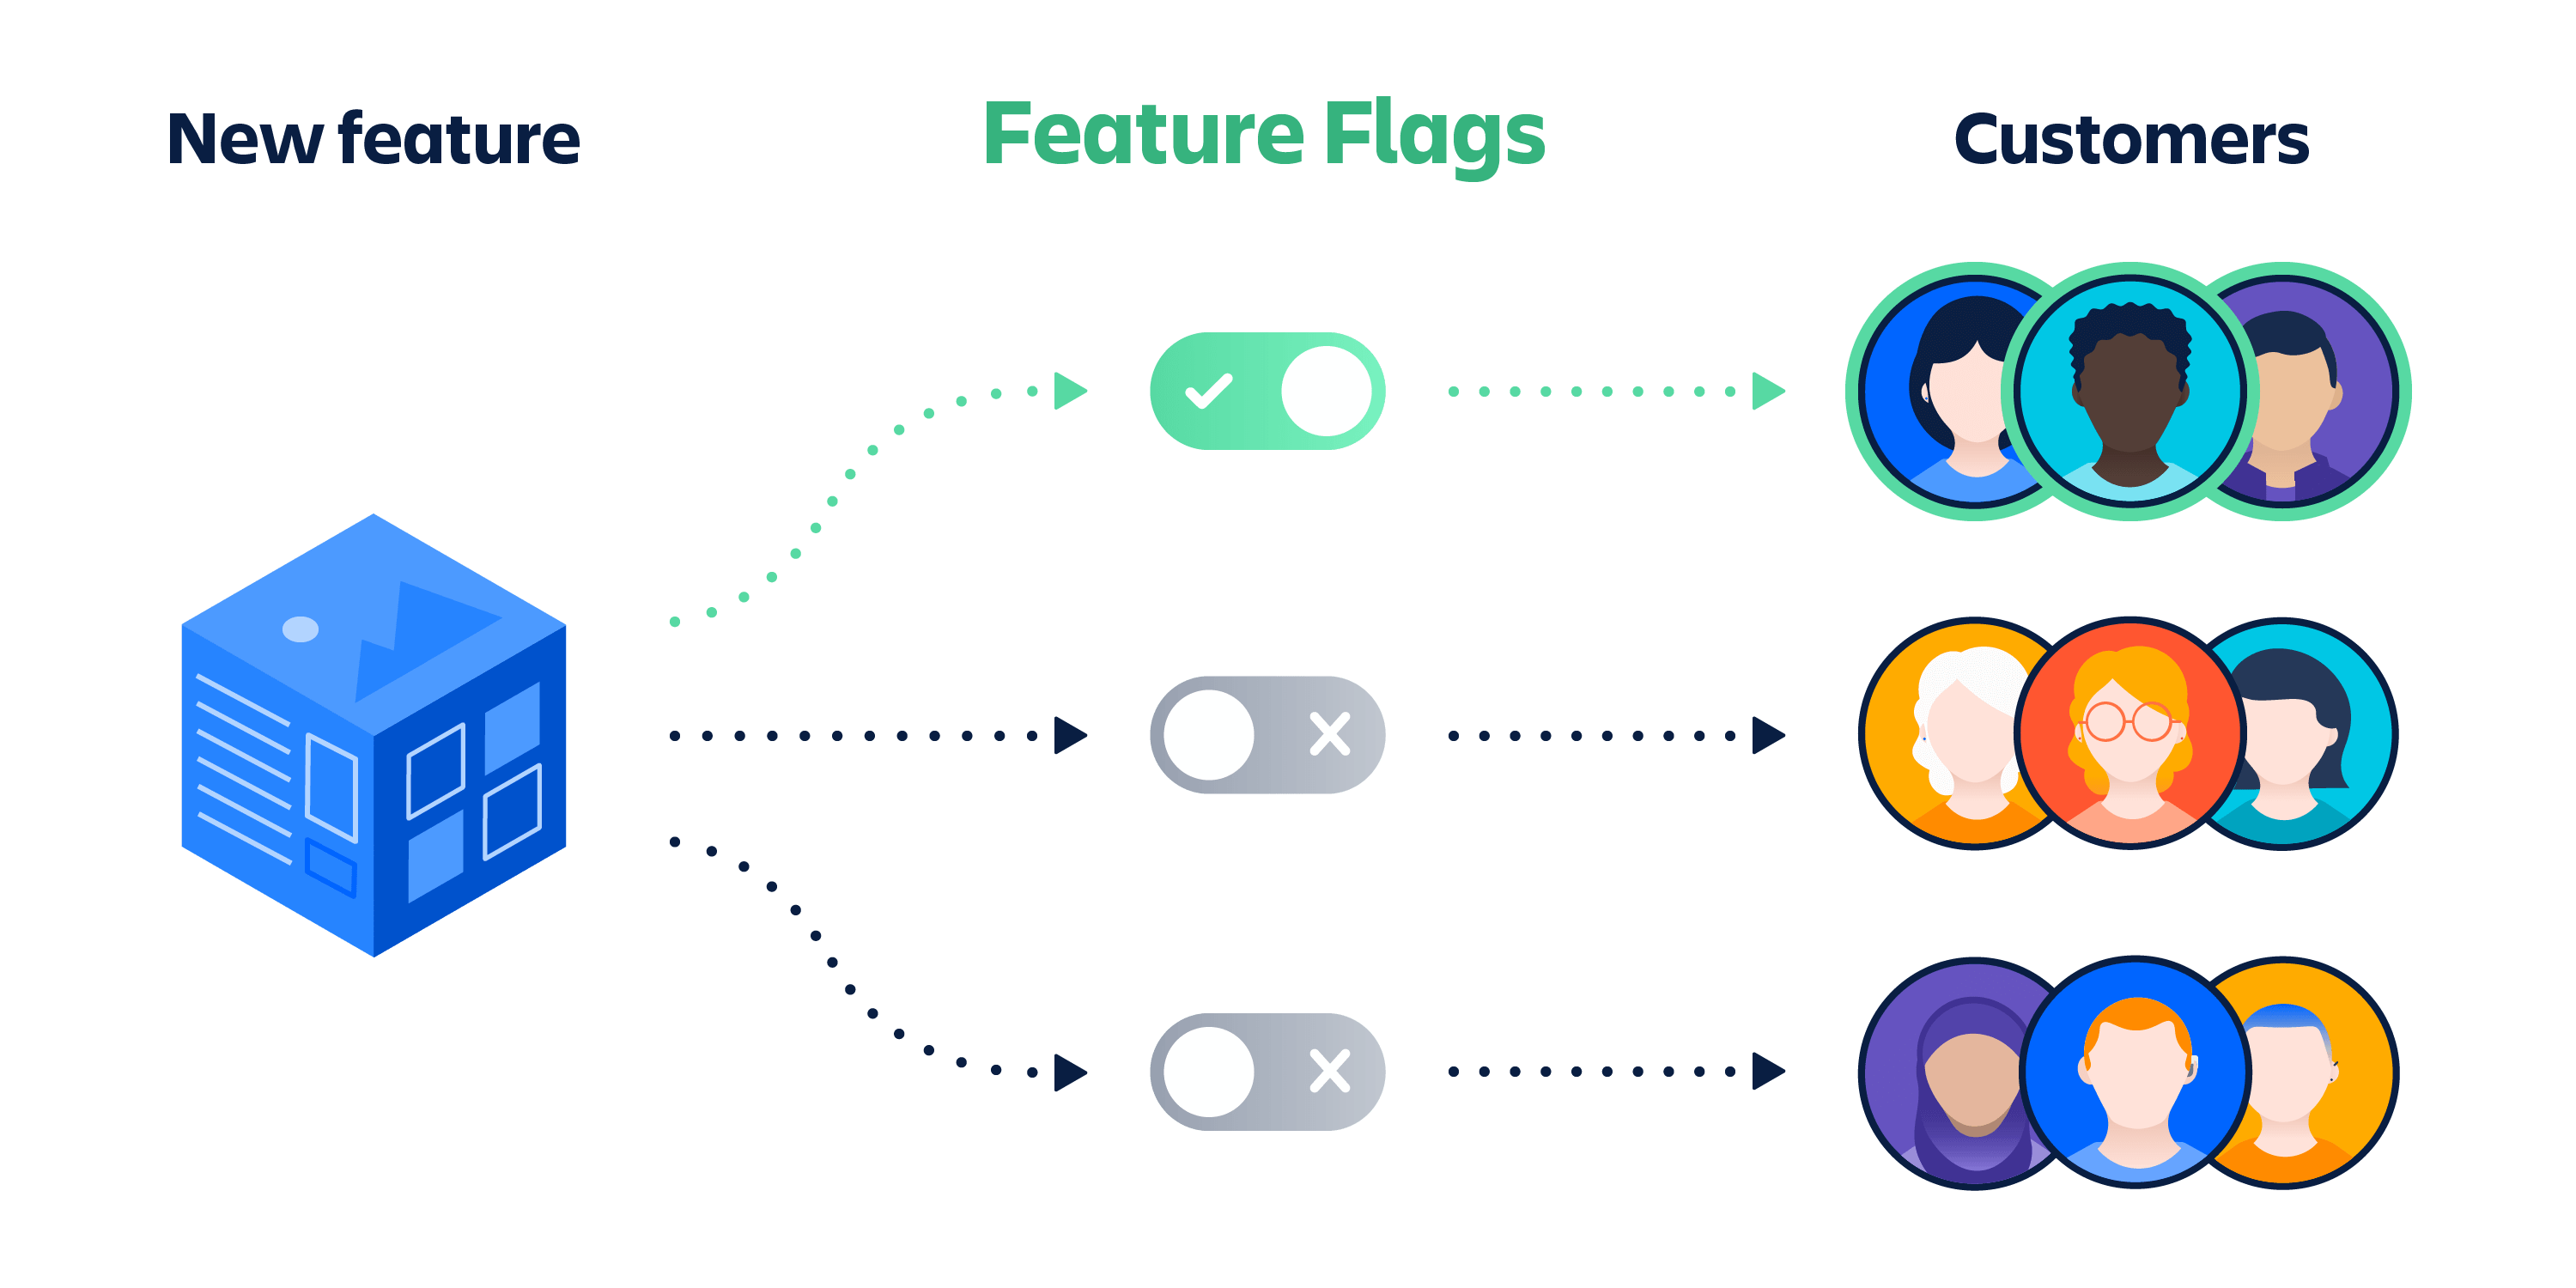 Illustration image showing a feature flagging diagram with a new feature as a blue colour cube, one toggle on/off button switched on in green color and other two toggles on/off button is switched off stage and customer faces in various colours